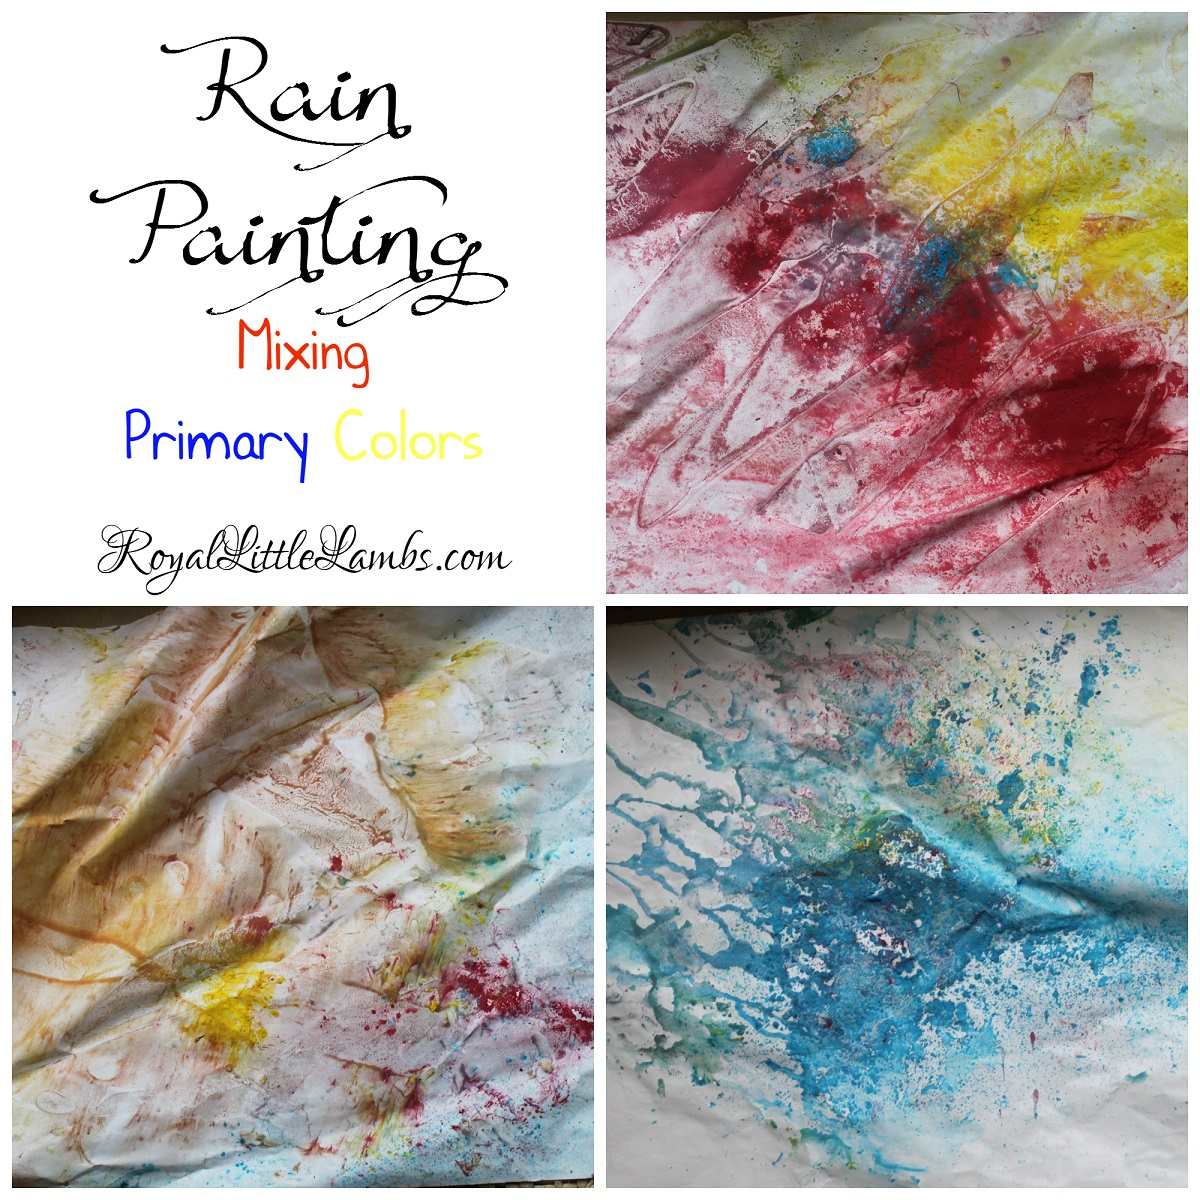 Rain Painting - Mixing Primary Colors